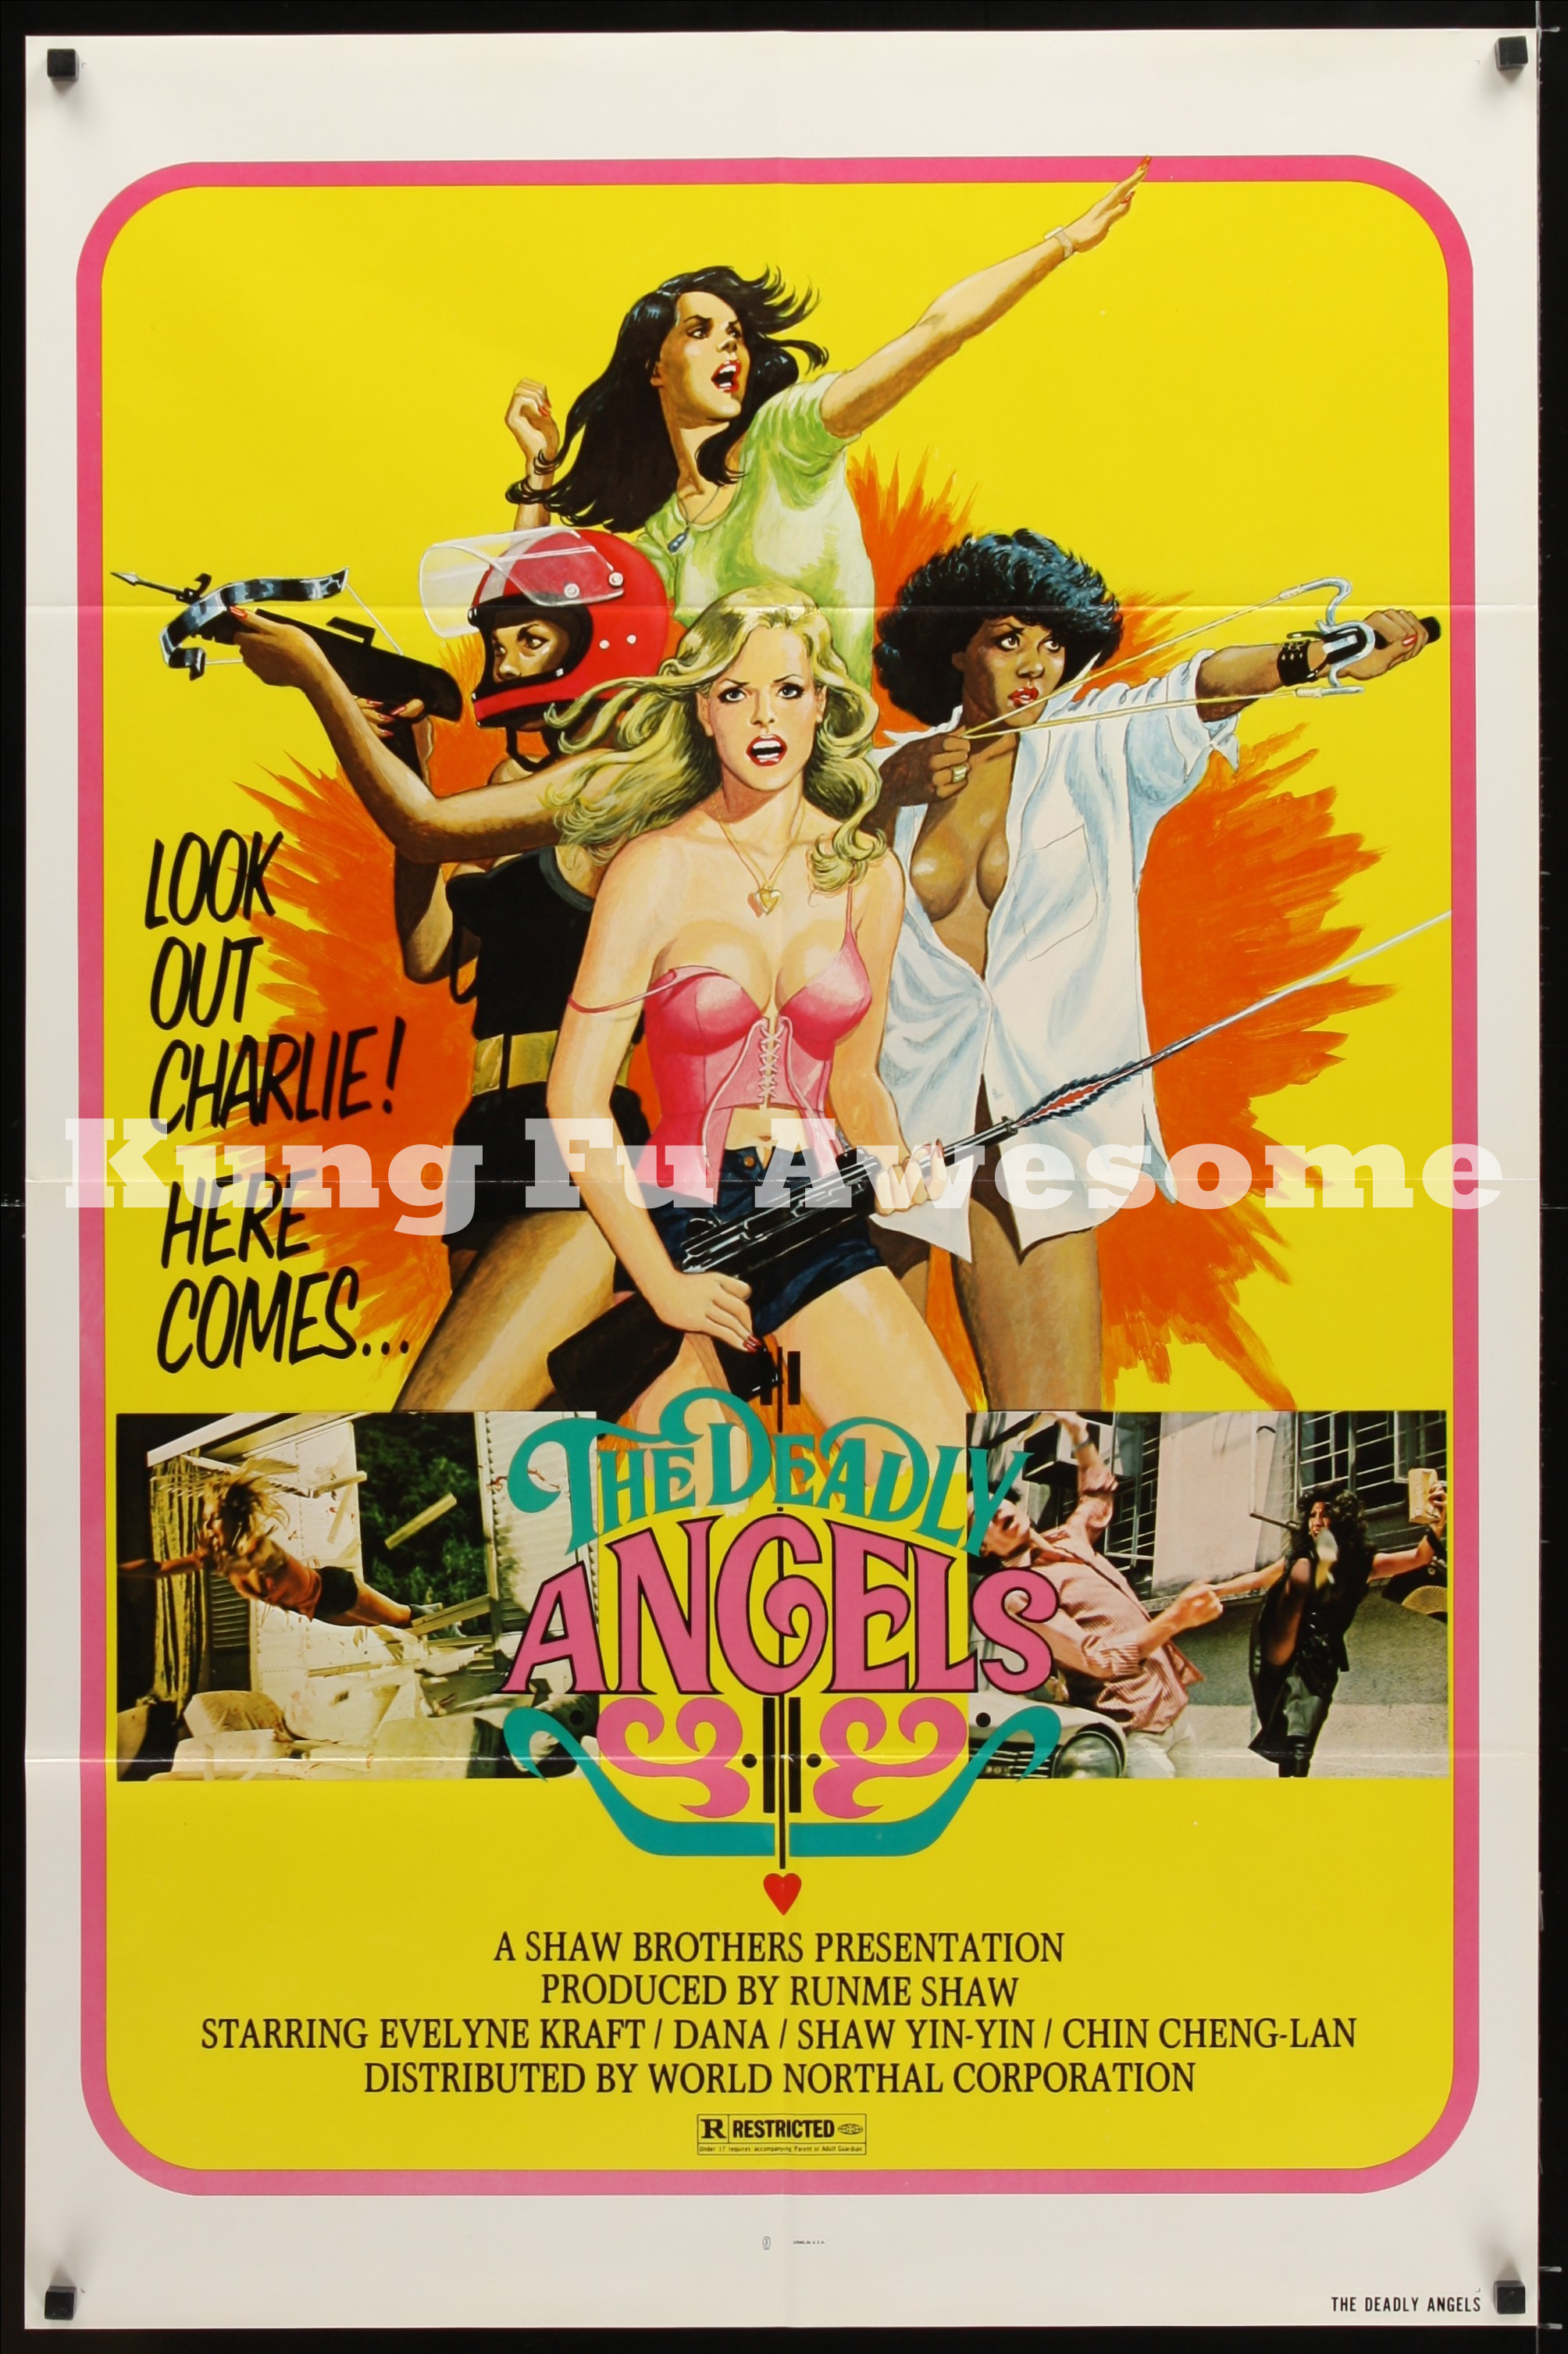 deadly_angels_dupe2_MF00105_L.jpg